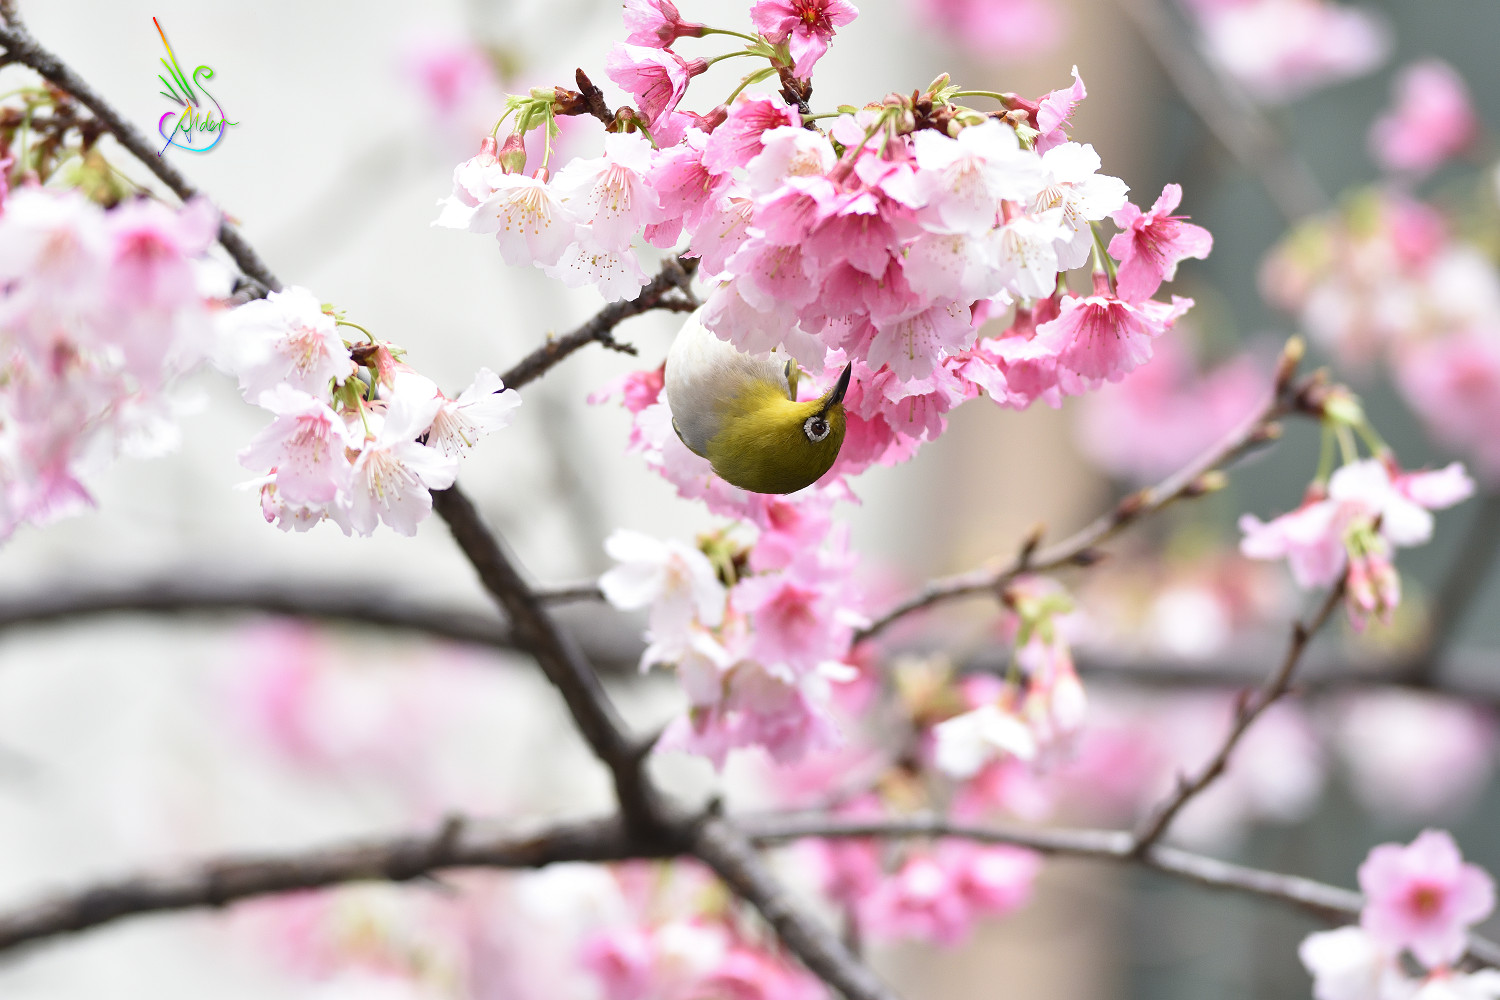 Sakura_White-eye_9975